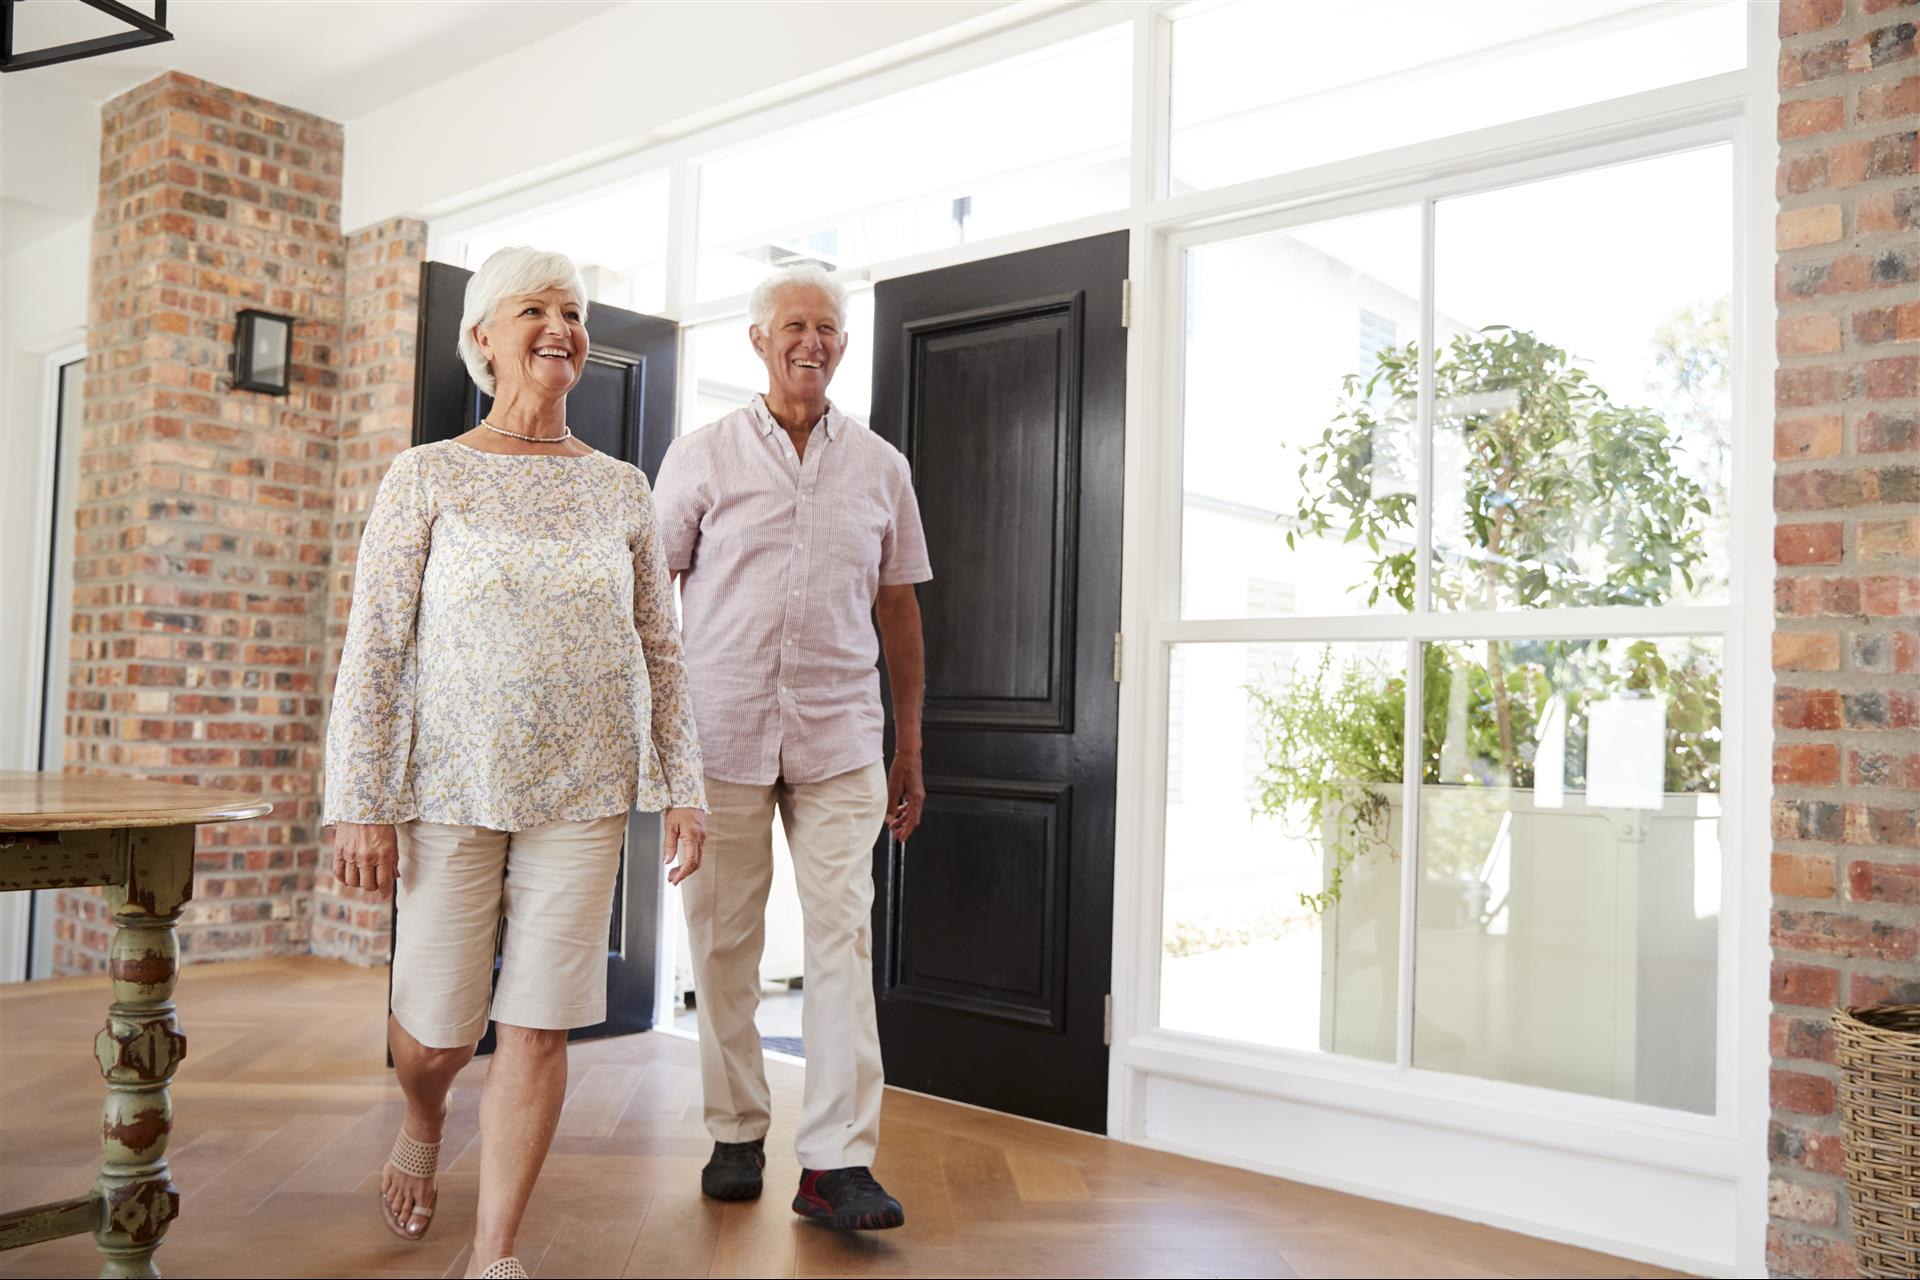 5 Ways to Make Walking a Daily Habit in Your Assisted Living